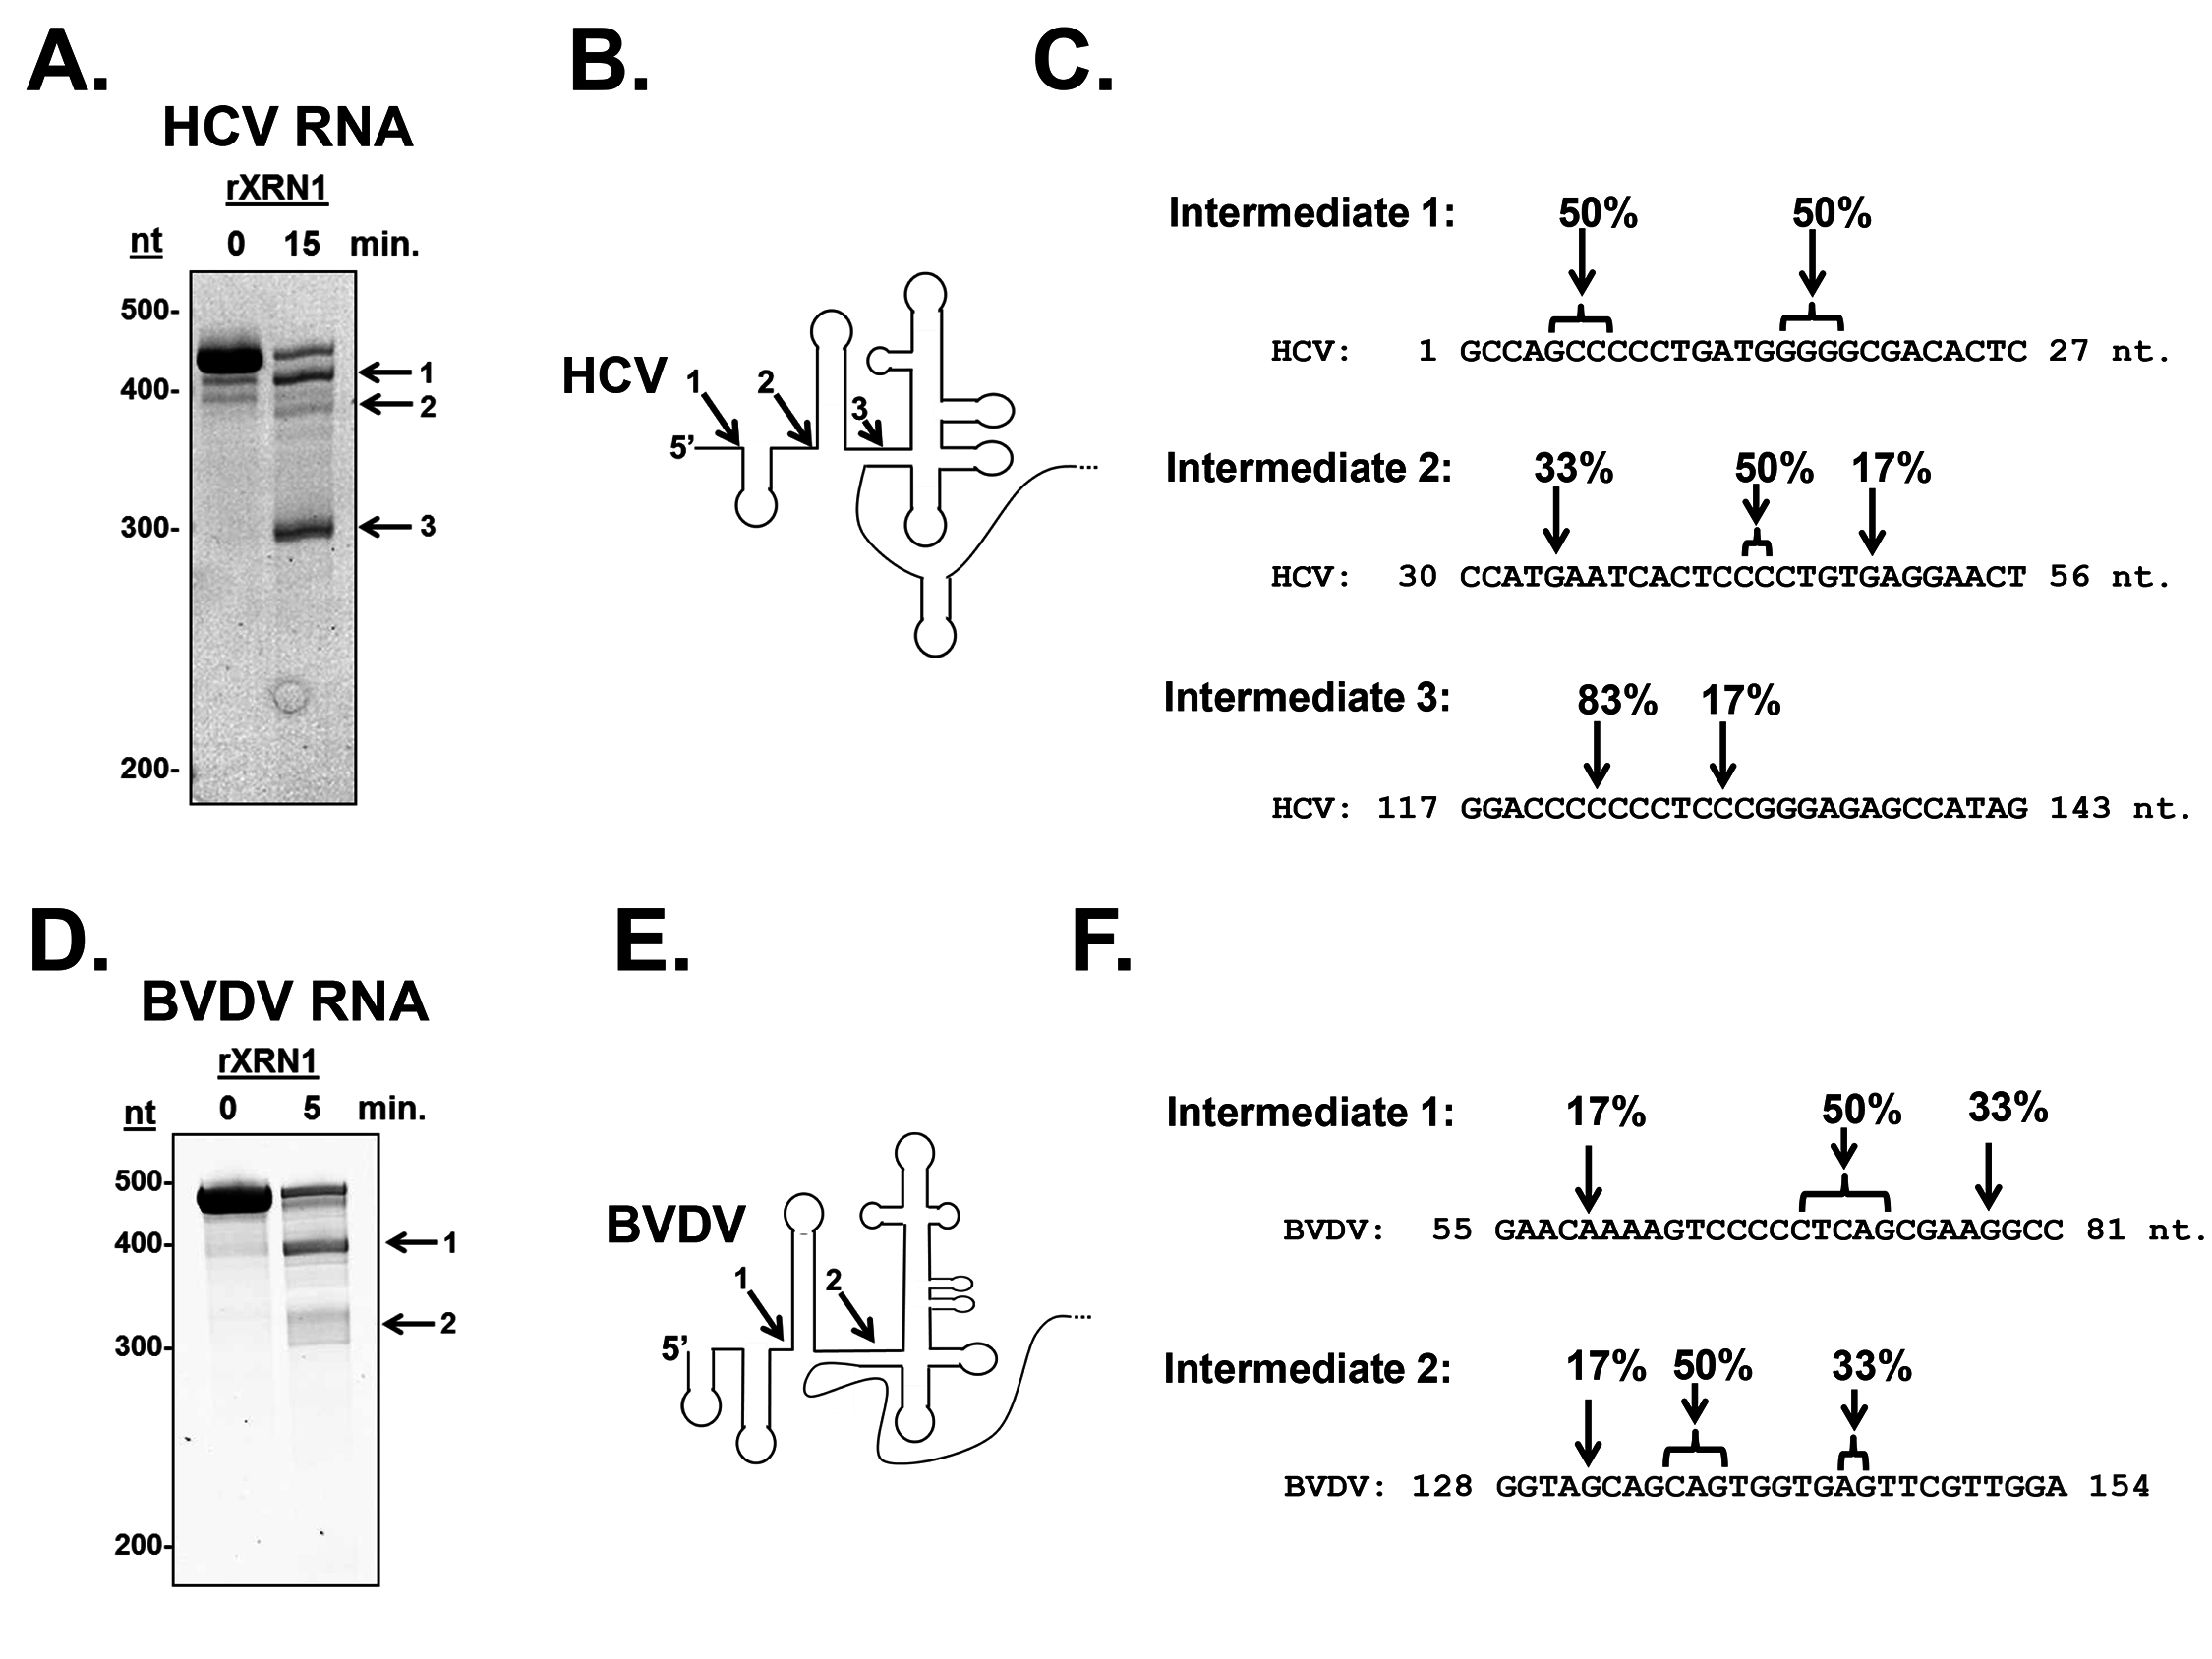 Determination of the 5' ends of the HCV and BVDV 5' UTR XRN1-mediated decay intermediates.